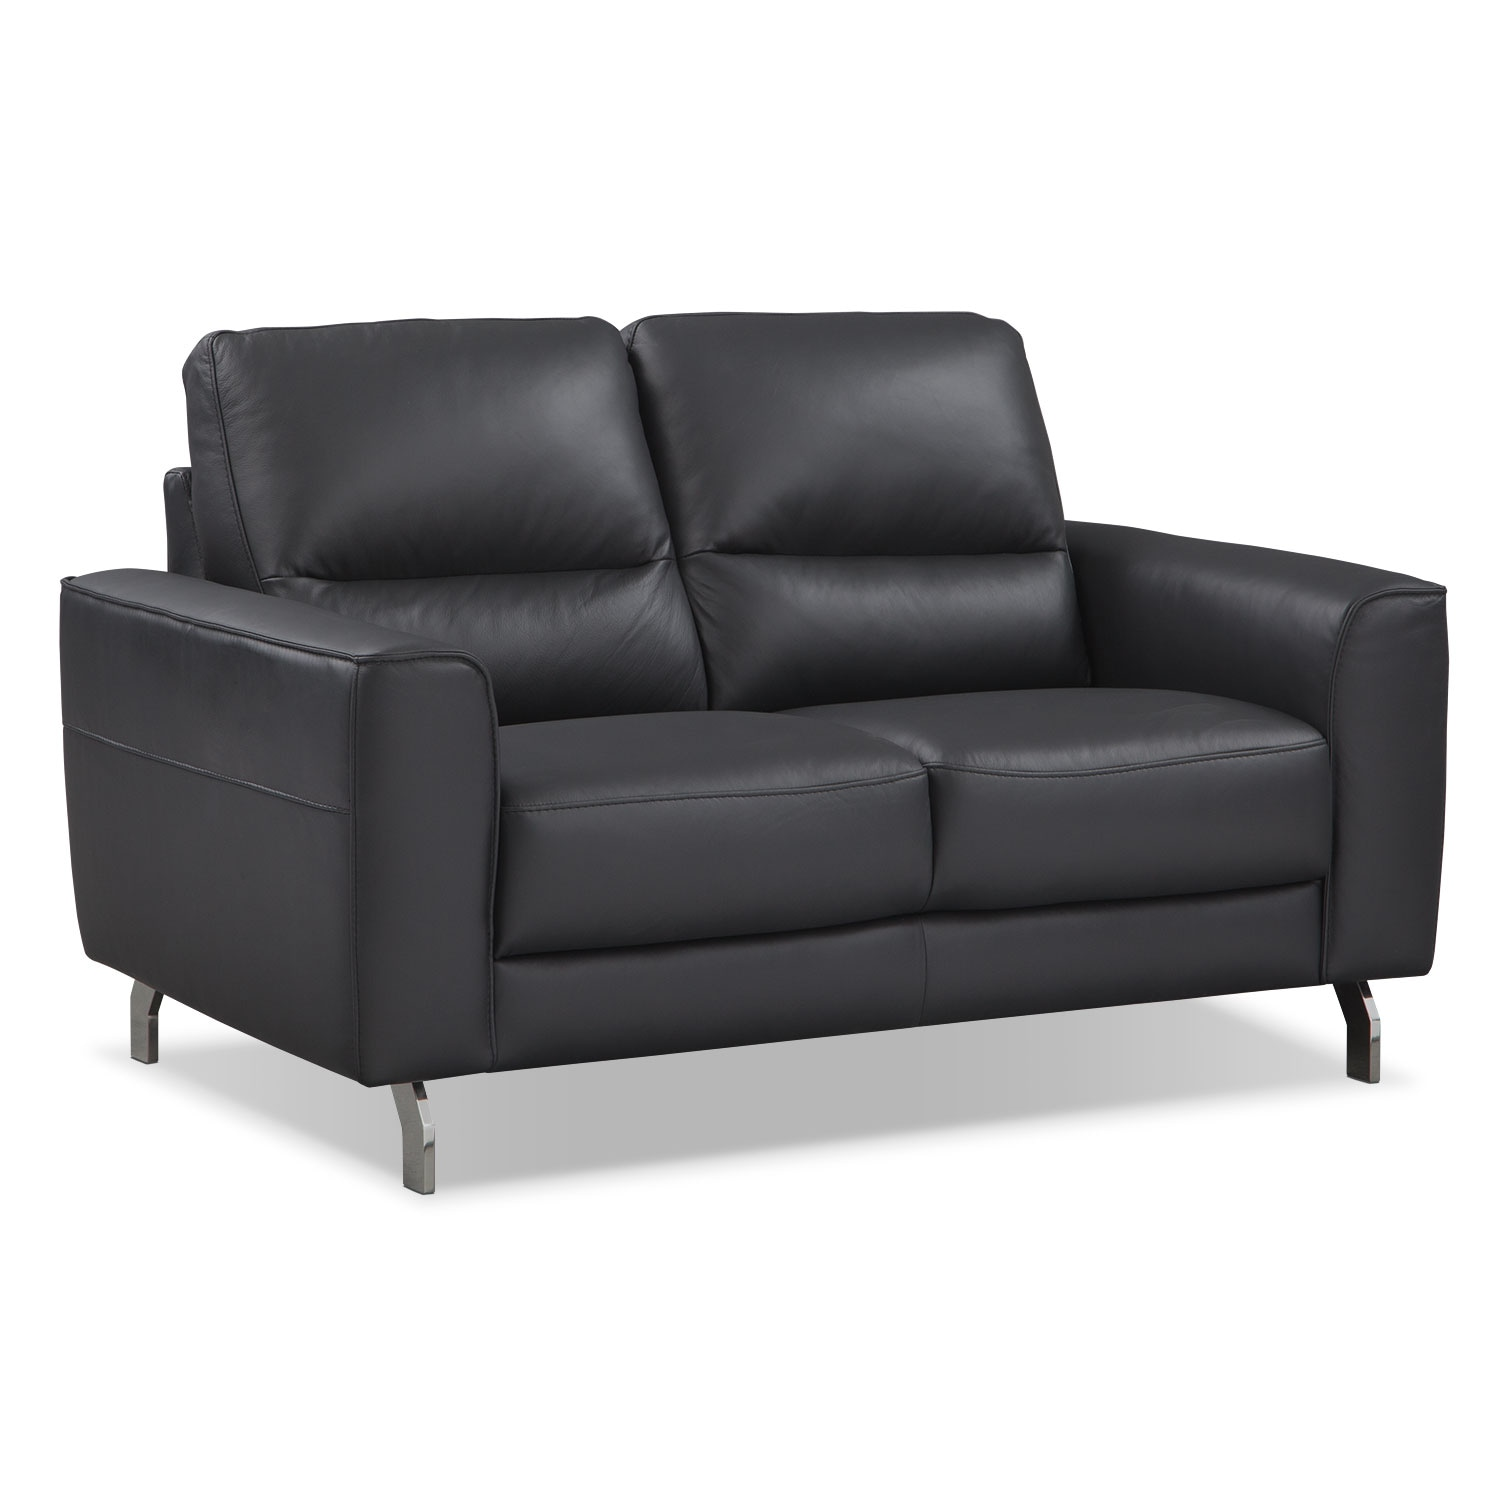 [Venice Black Loveseat]